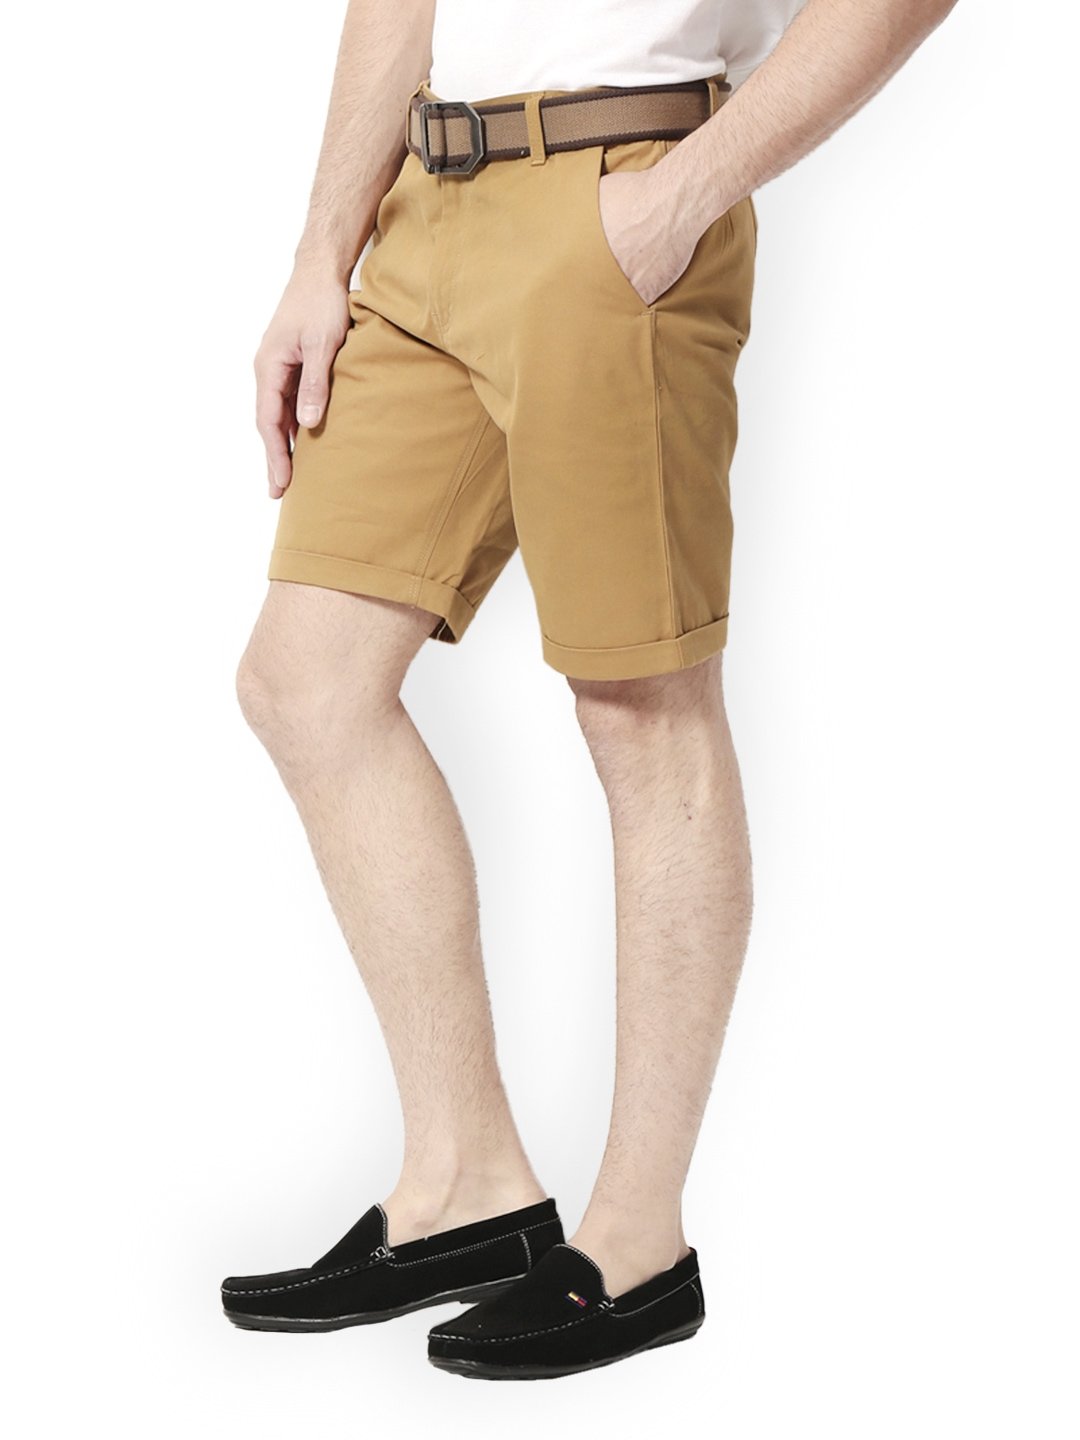 Myntra haute couture men beige shorts 526508 buy myntra for Haute couture shopping